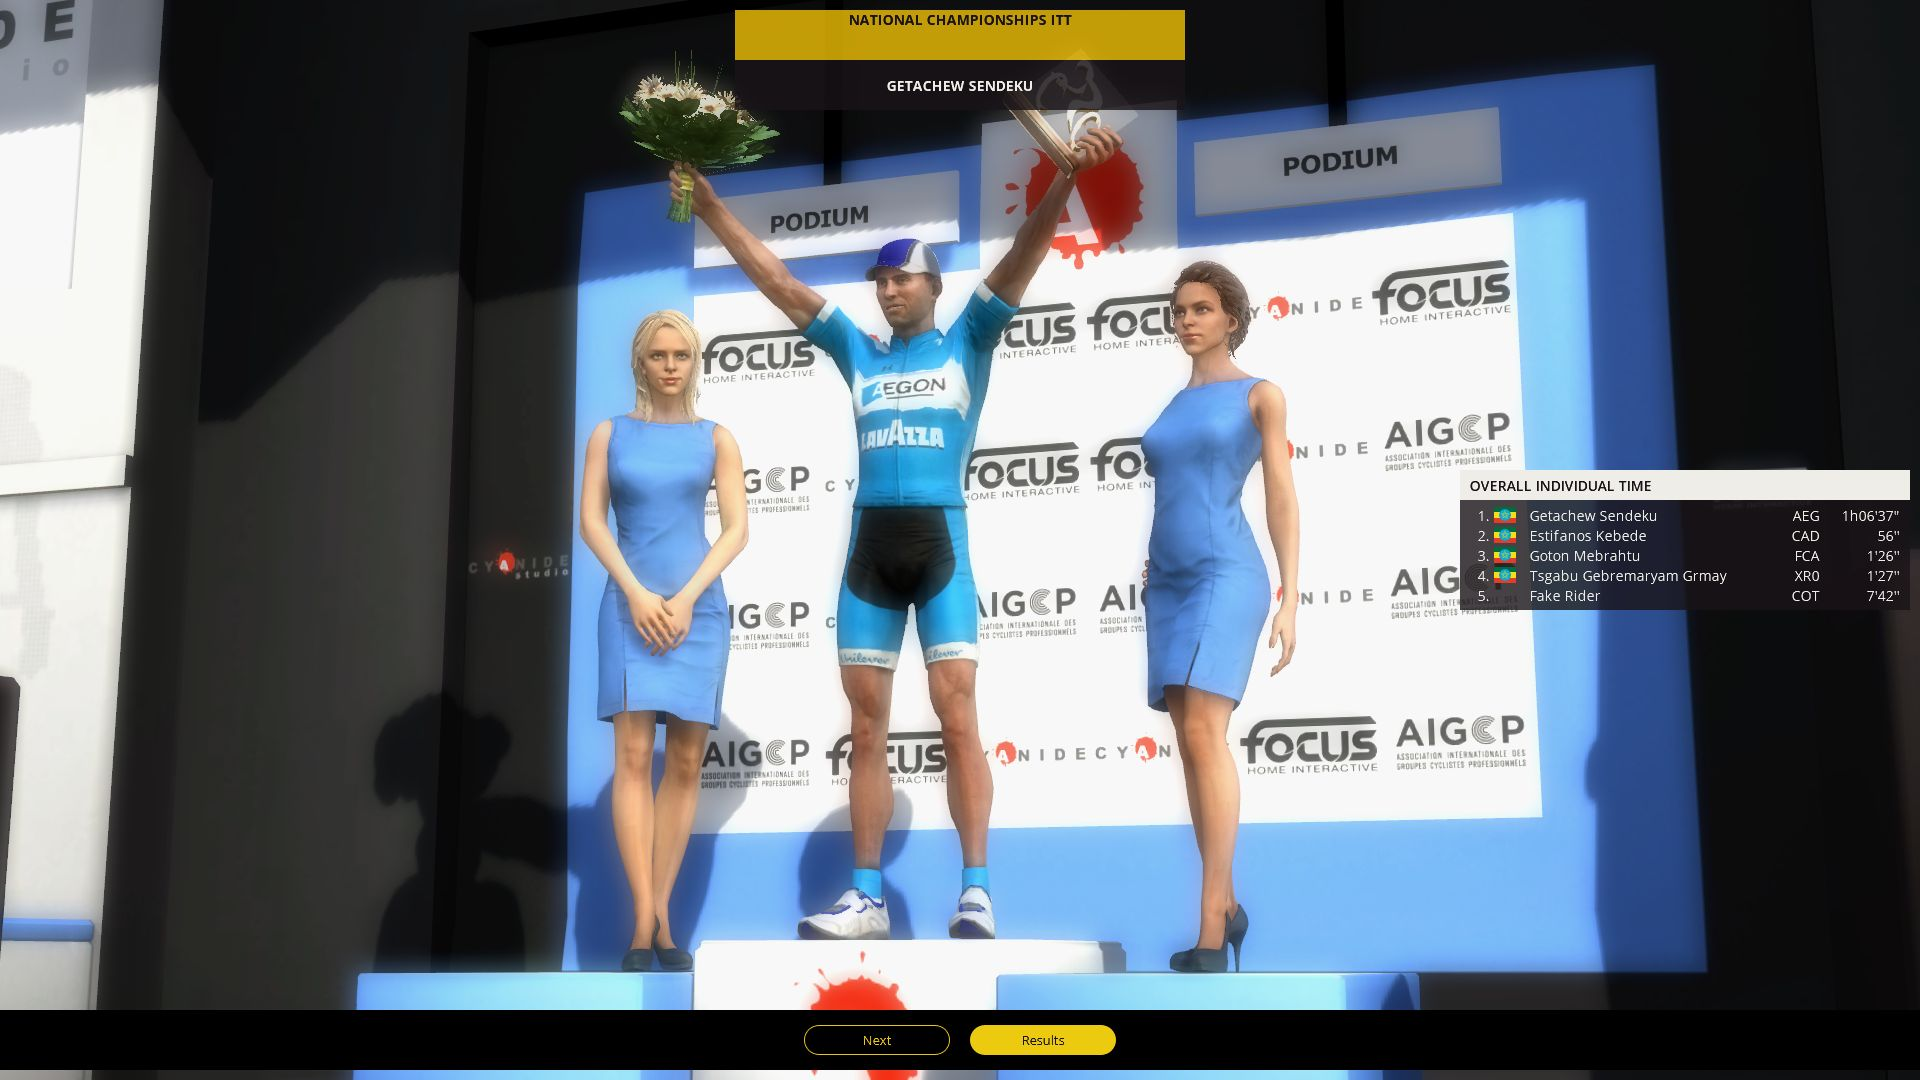 pcmdaily.com/images/mg/2019/Races/Other/NC/ETH/ETHTT%205.jpg